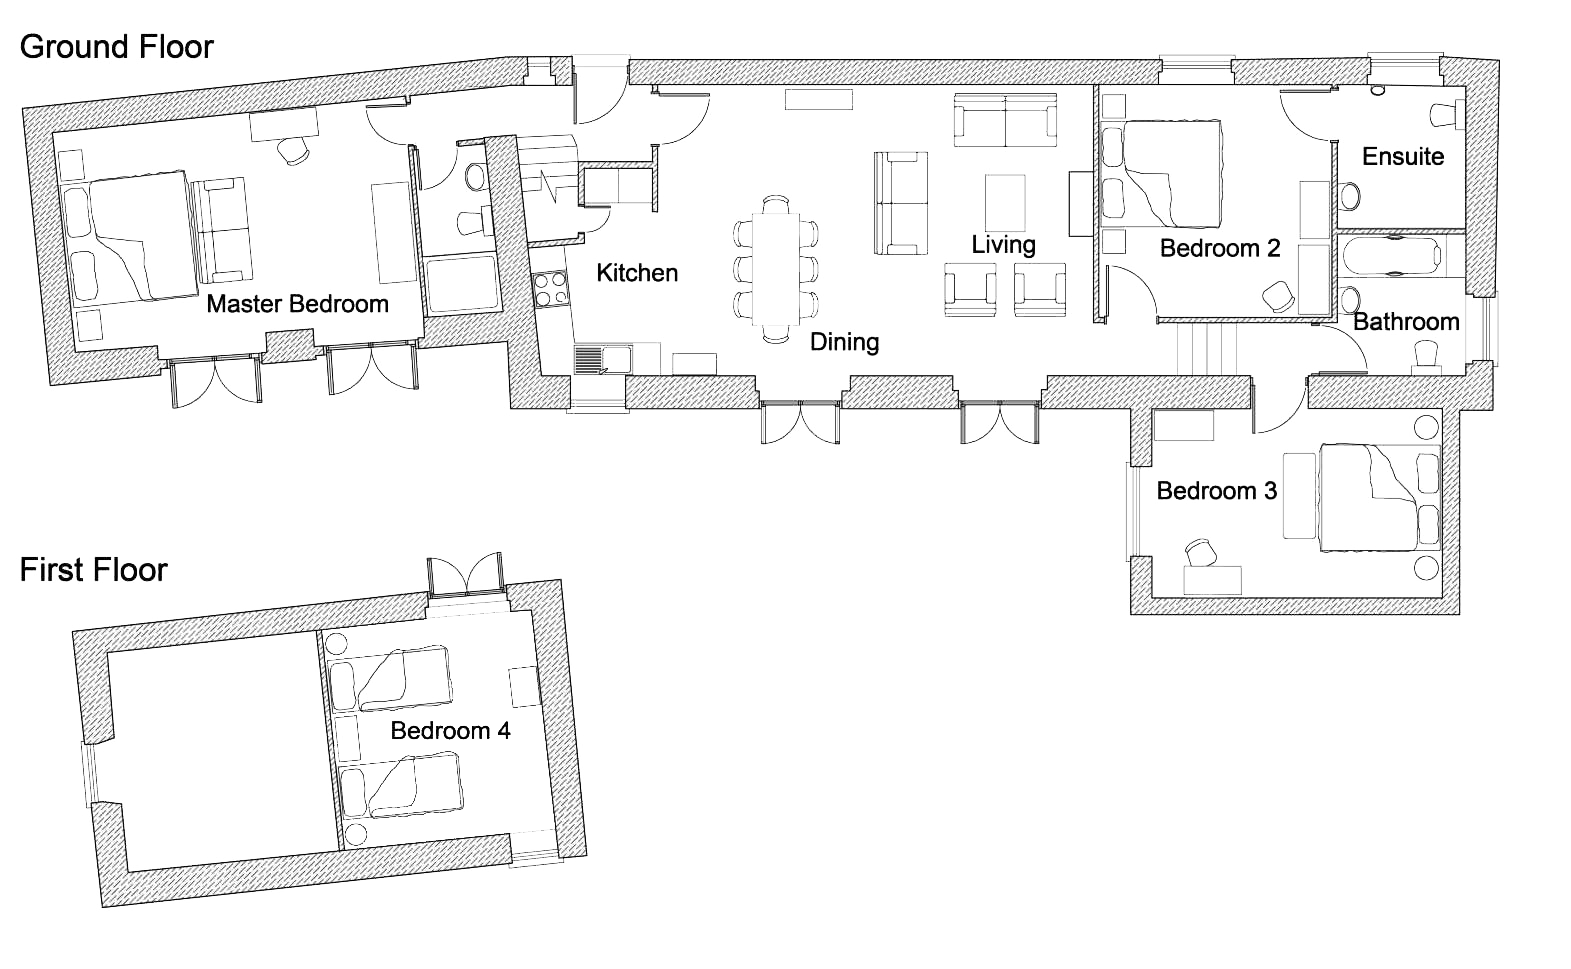 The floorplan for The Garden House